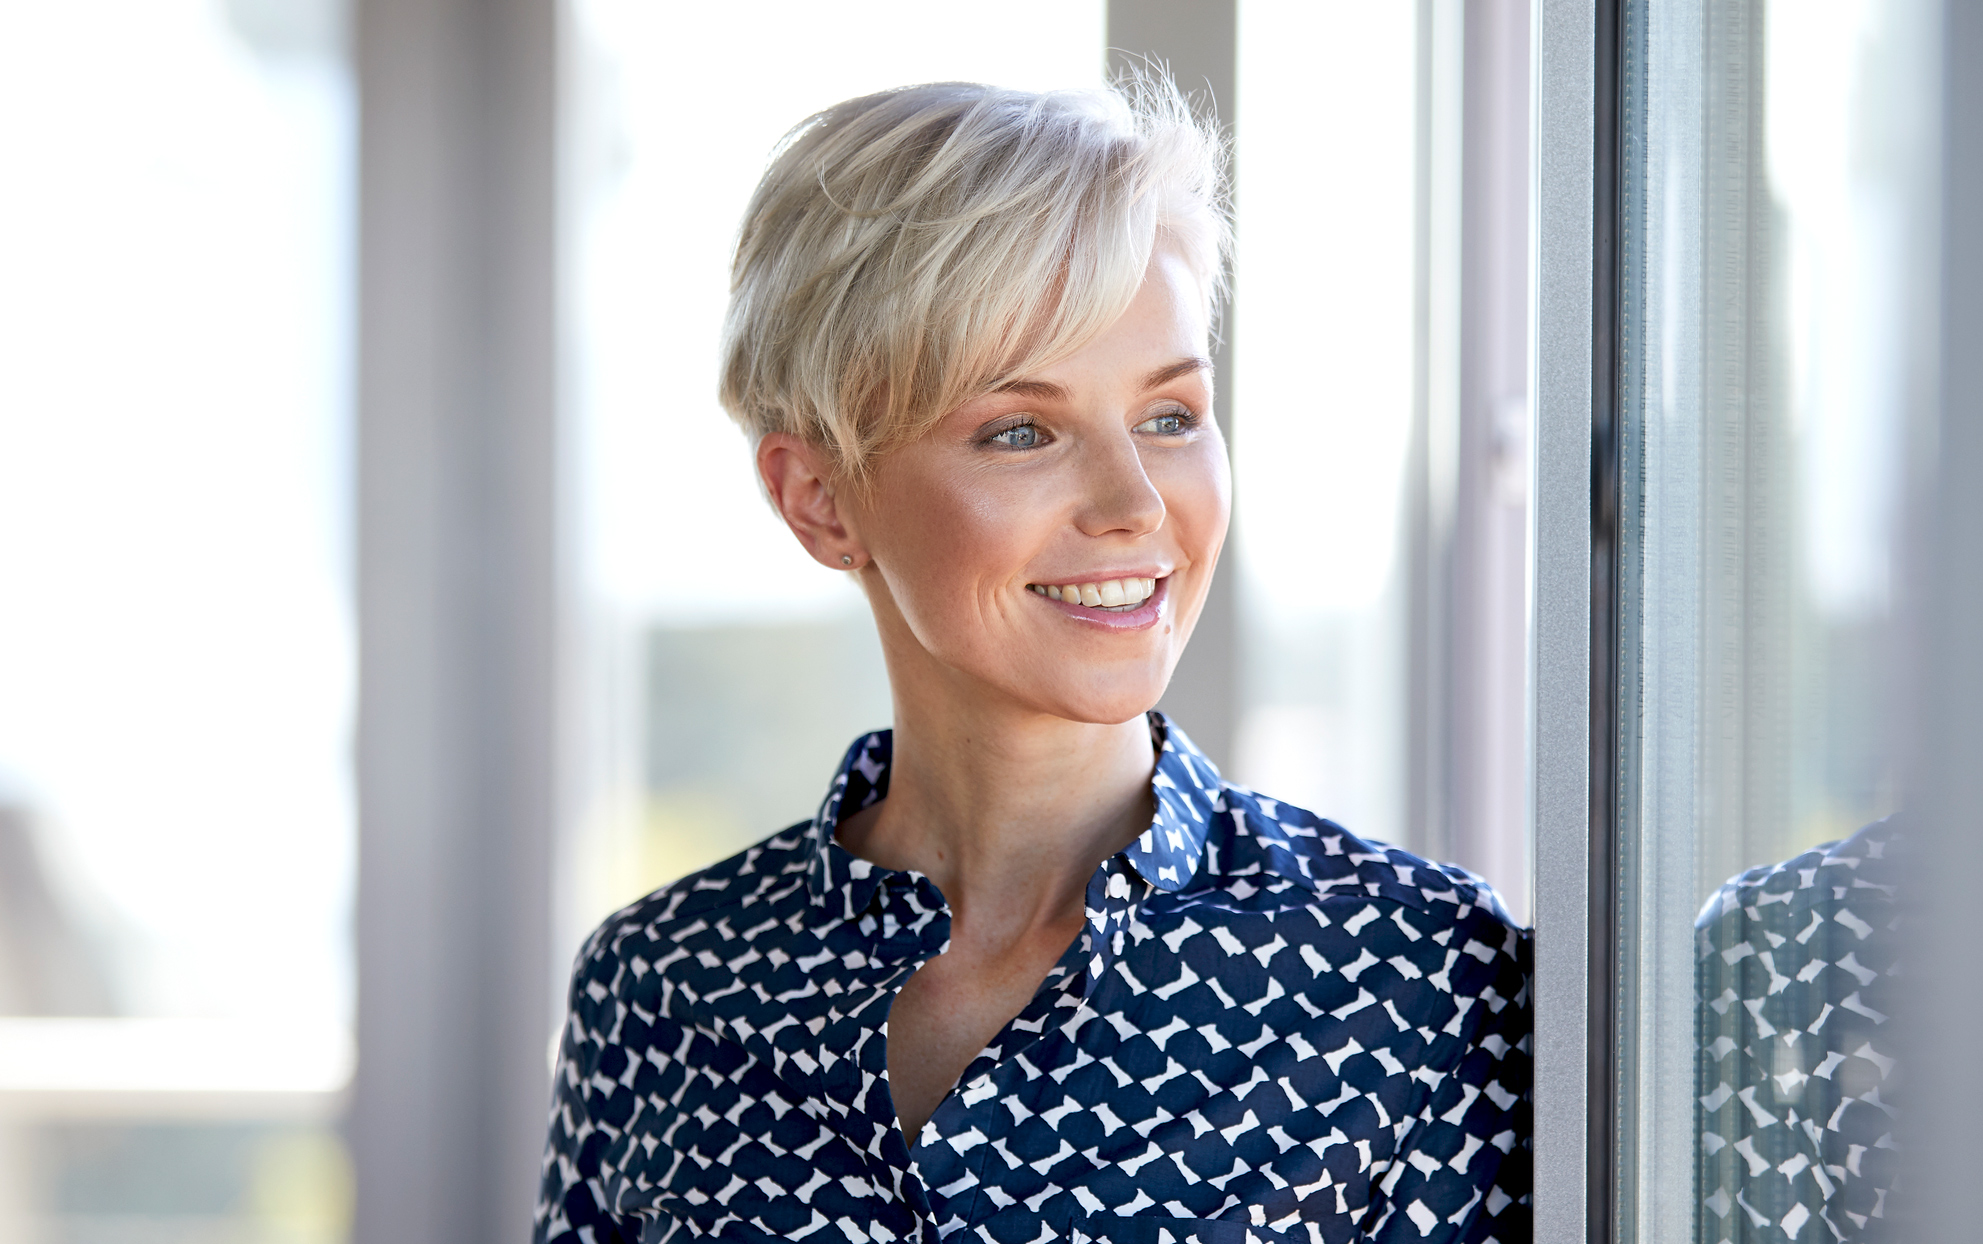 Woman with blonde hair in a Pixie cut